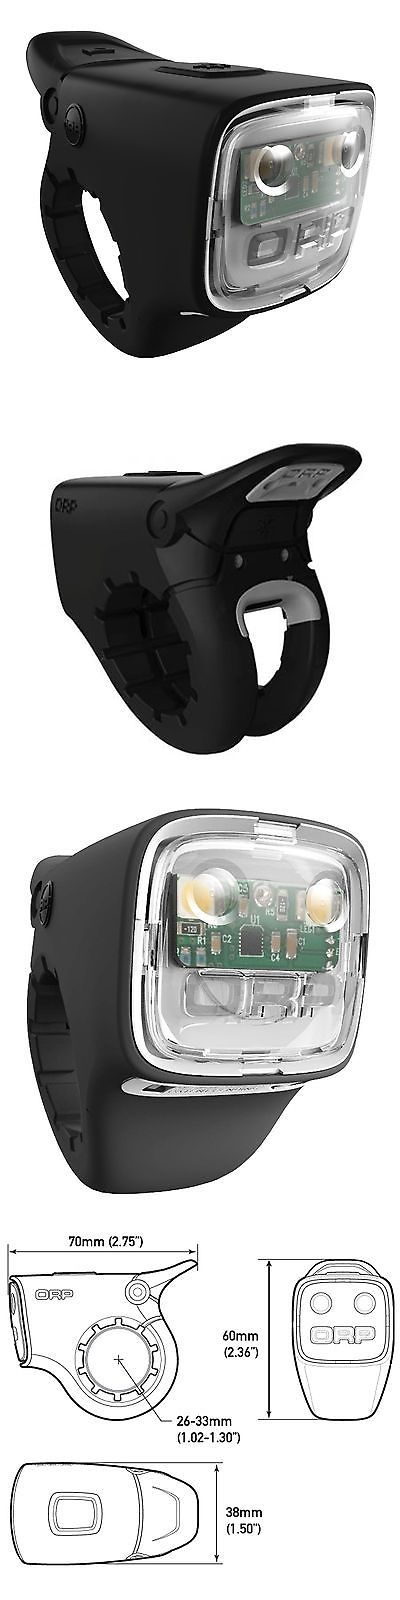 Bells and Horns 123474: New Orp Smart Horn And Front Bike Light - Loud Bicycle Bell -> BUY IT NOW ONLY: $49.95 on eBay!